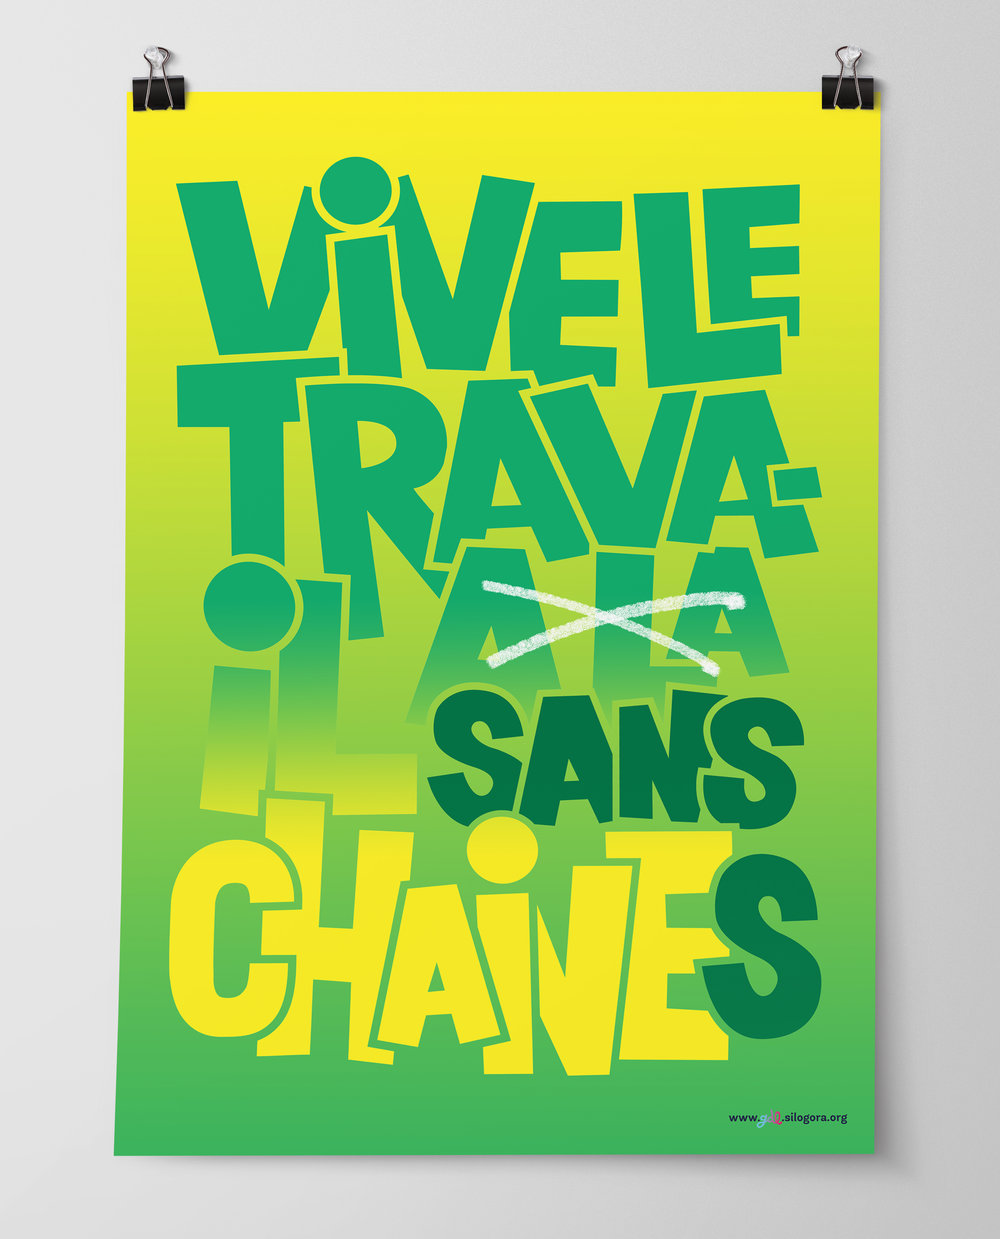 grand-débat-large-poster-yellow-pabloka-chispa.jpg